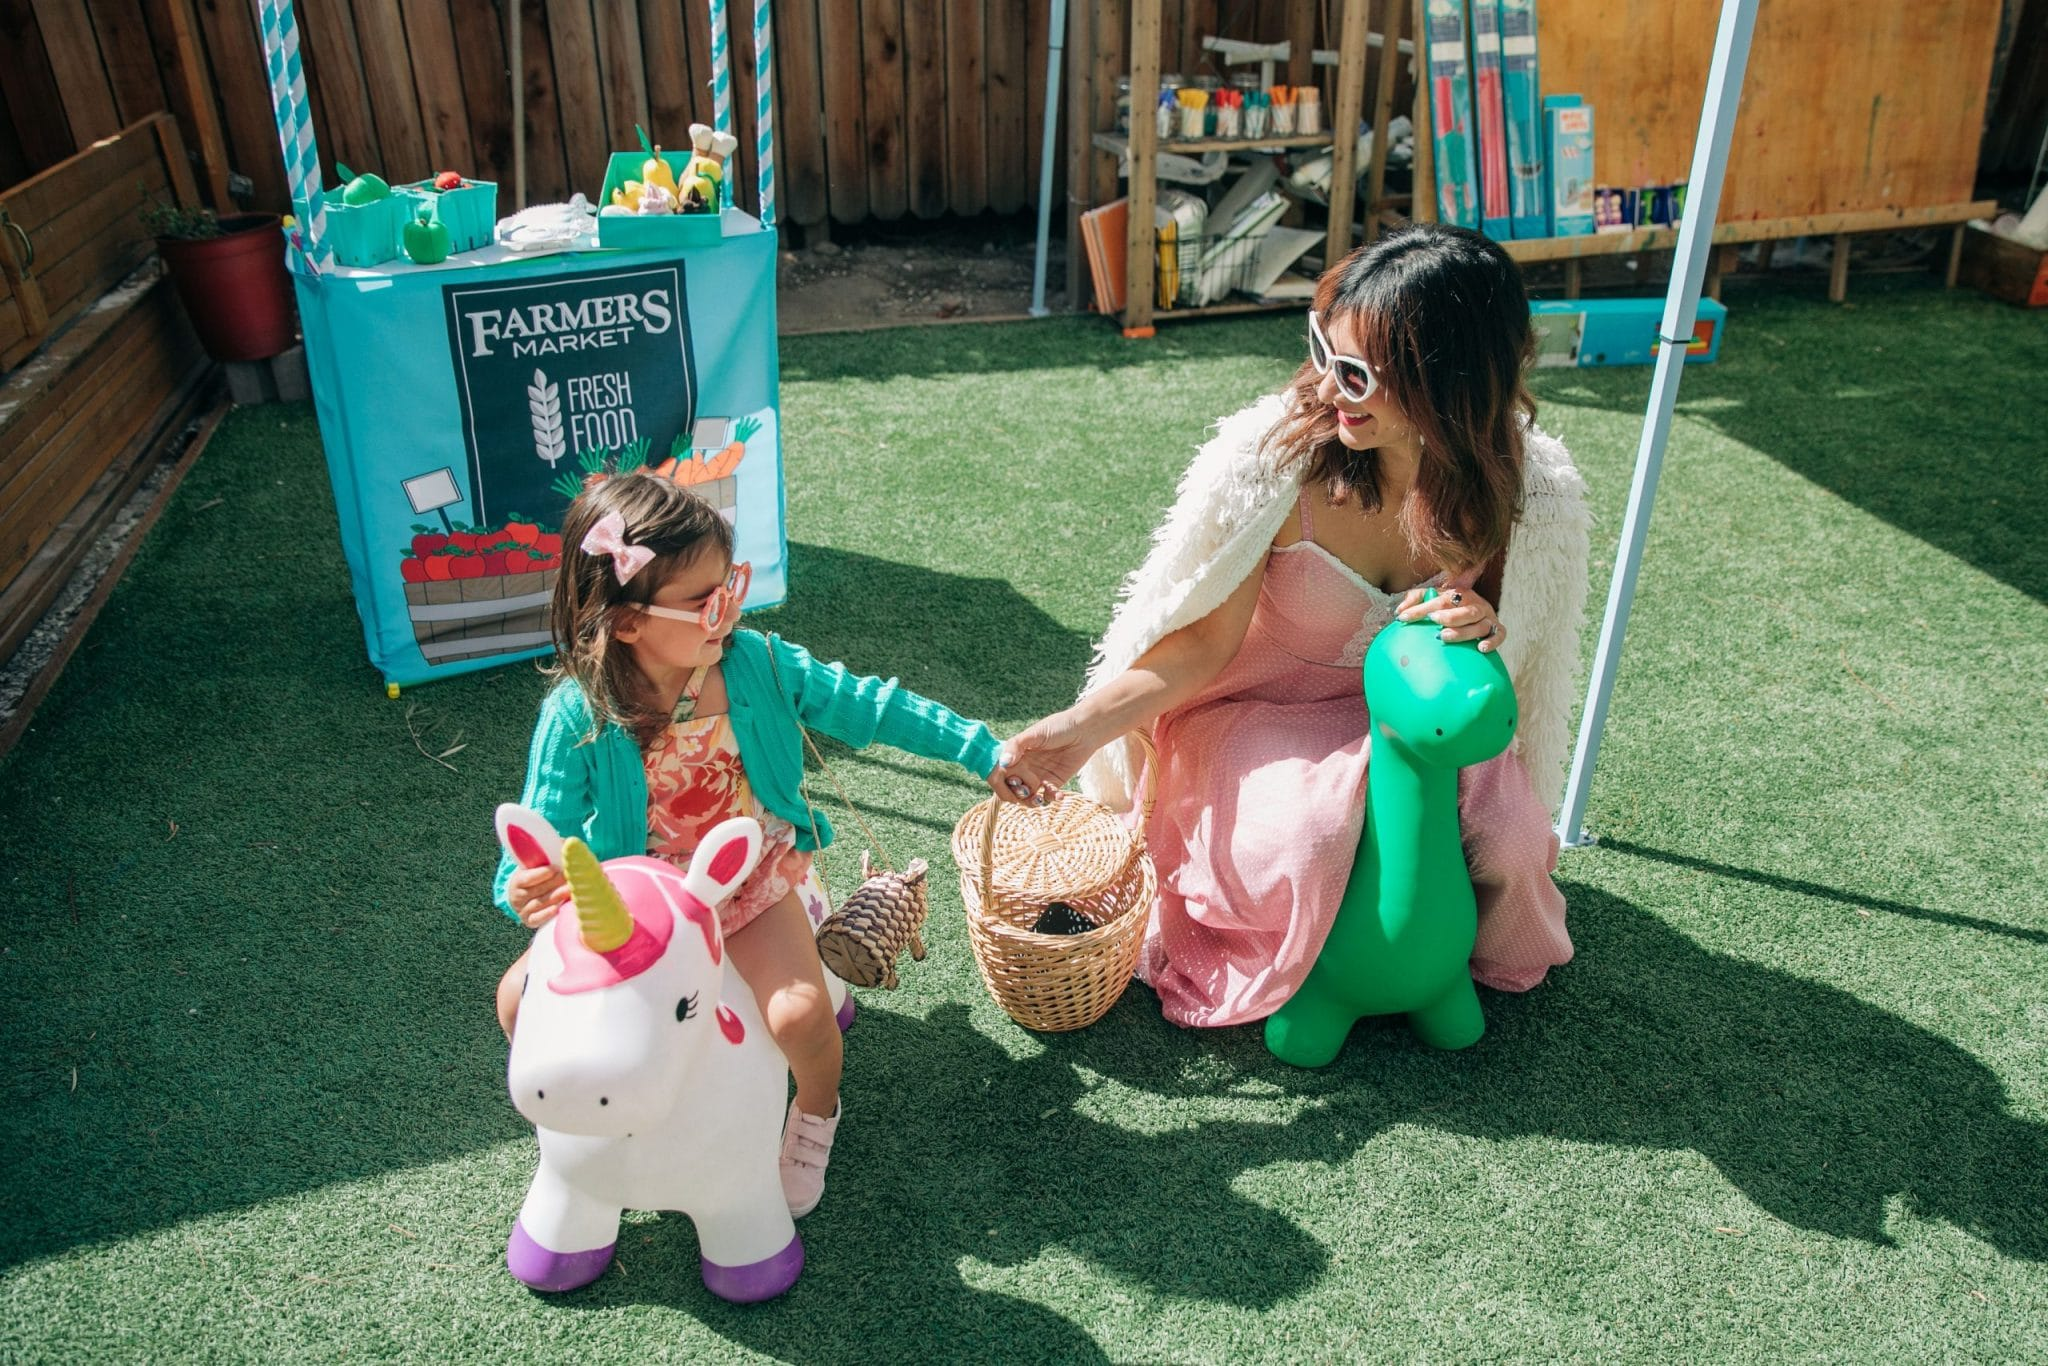 A child on a unicorn at the party